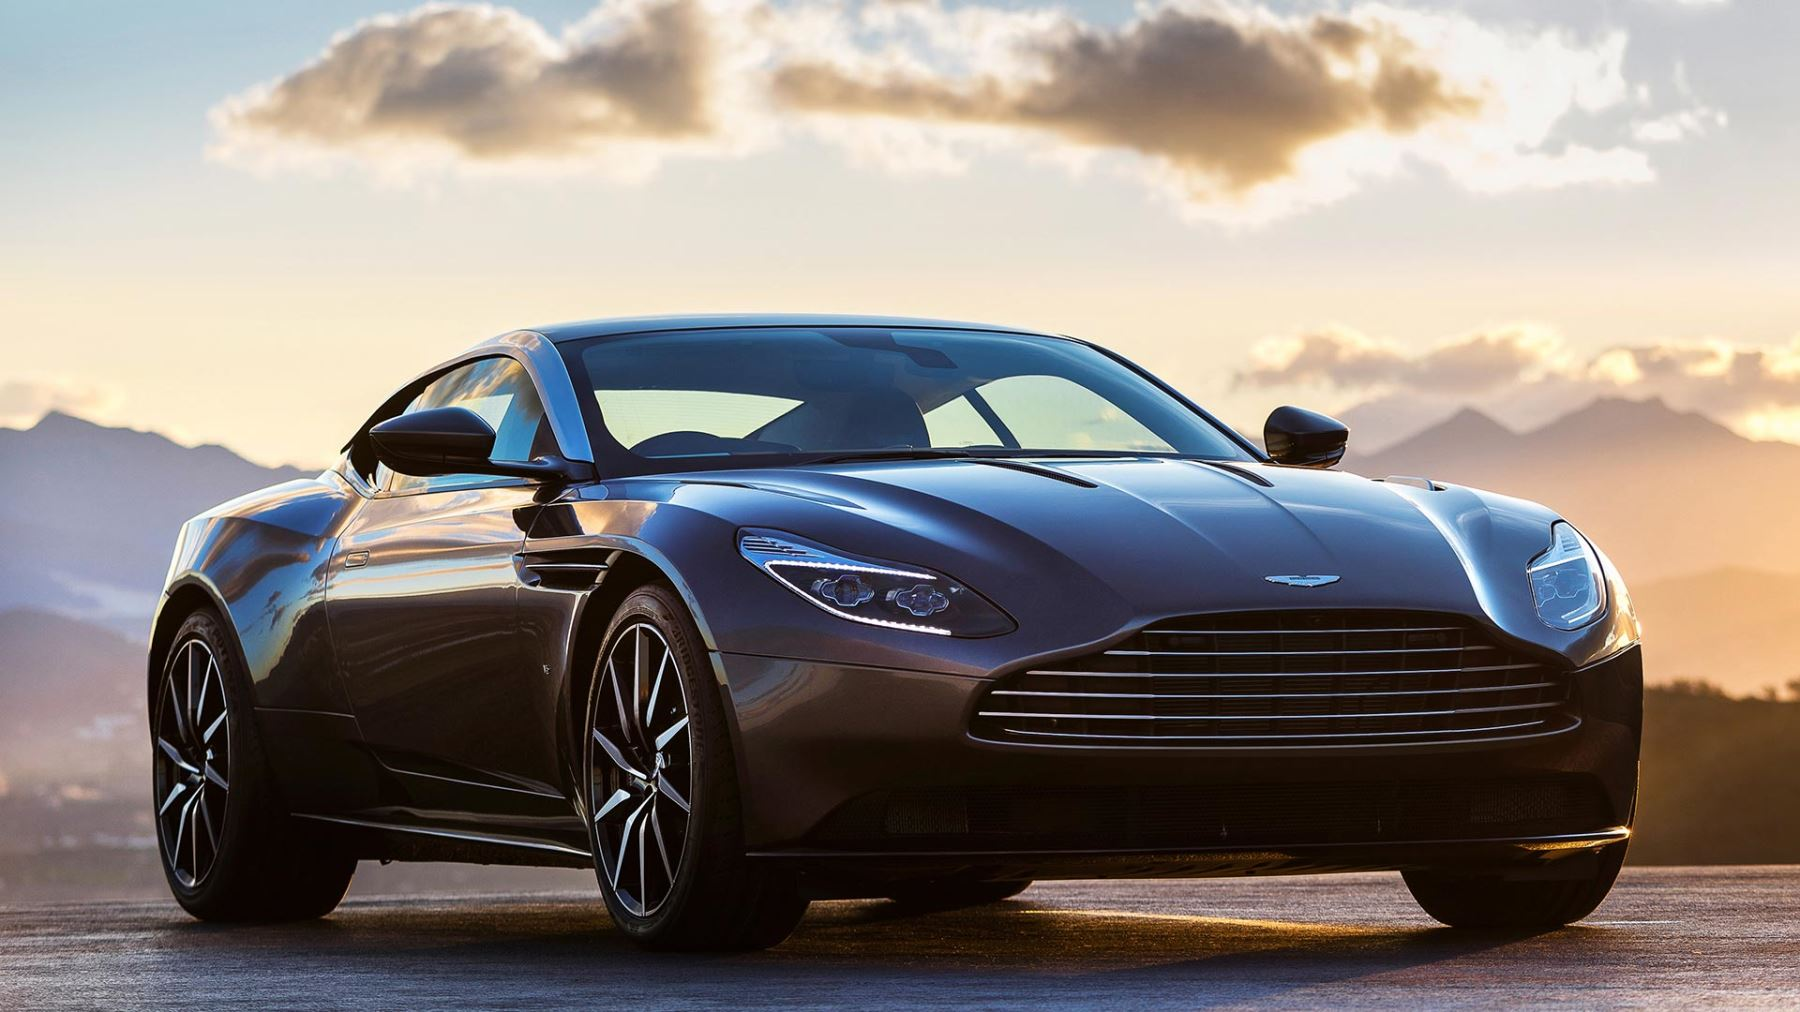 Aston Martin DB V With Years Free Servicing - Aston martin vantage maintenance